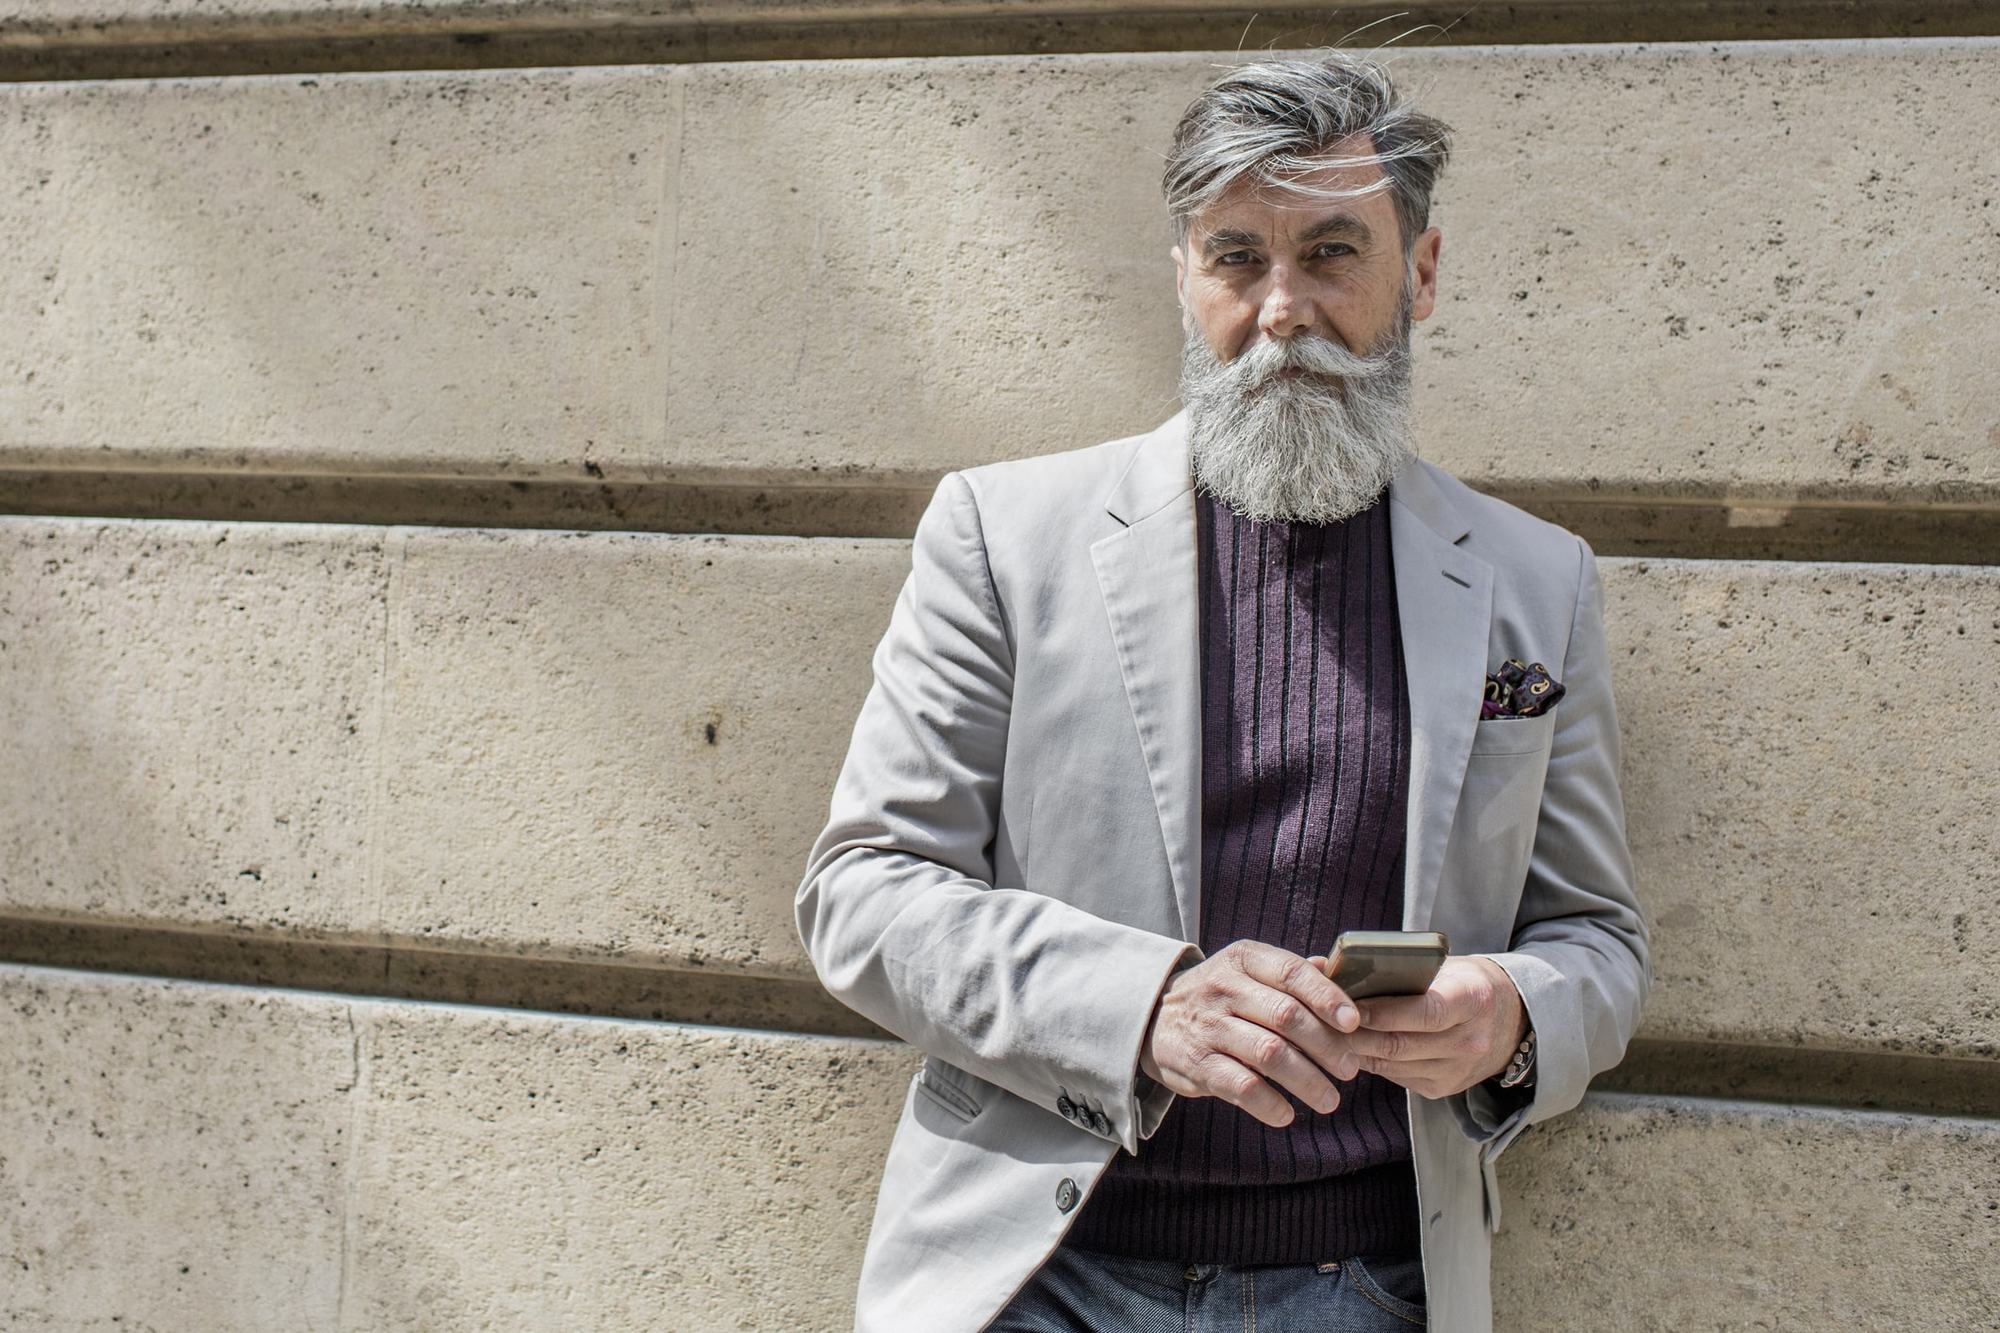 On Trend Hairstyles For Men Over 50